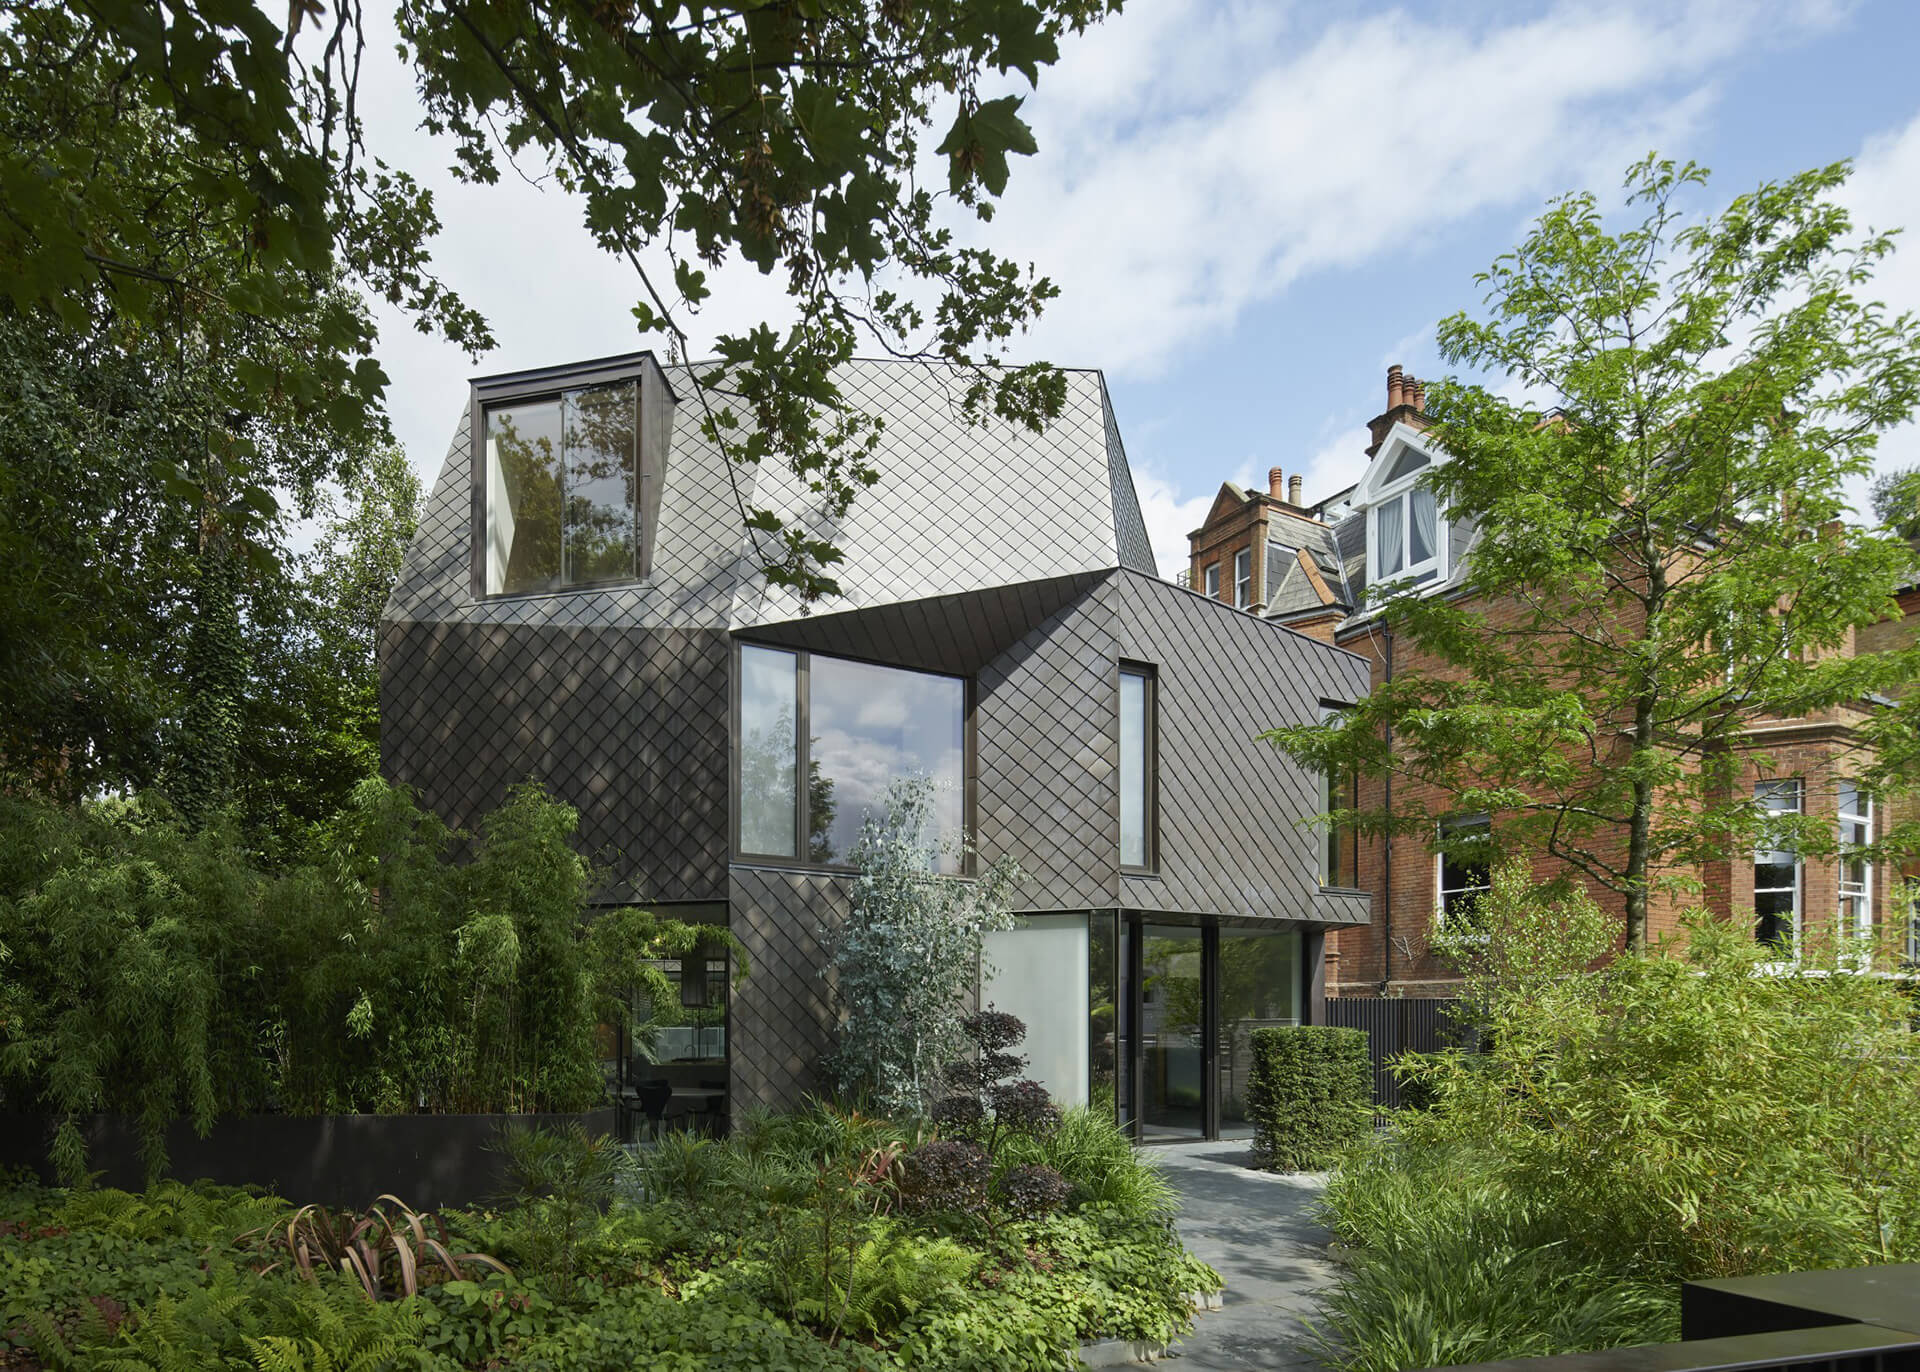 Mesh House project by Architect of the year, Alison Brook Architects | Dezeen Awards 2020 | London | STIRworld